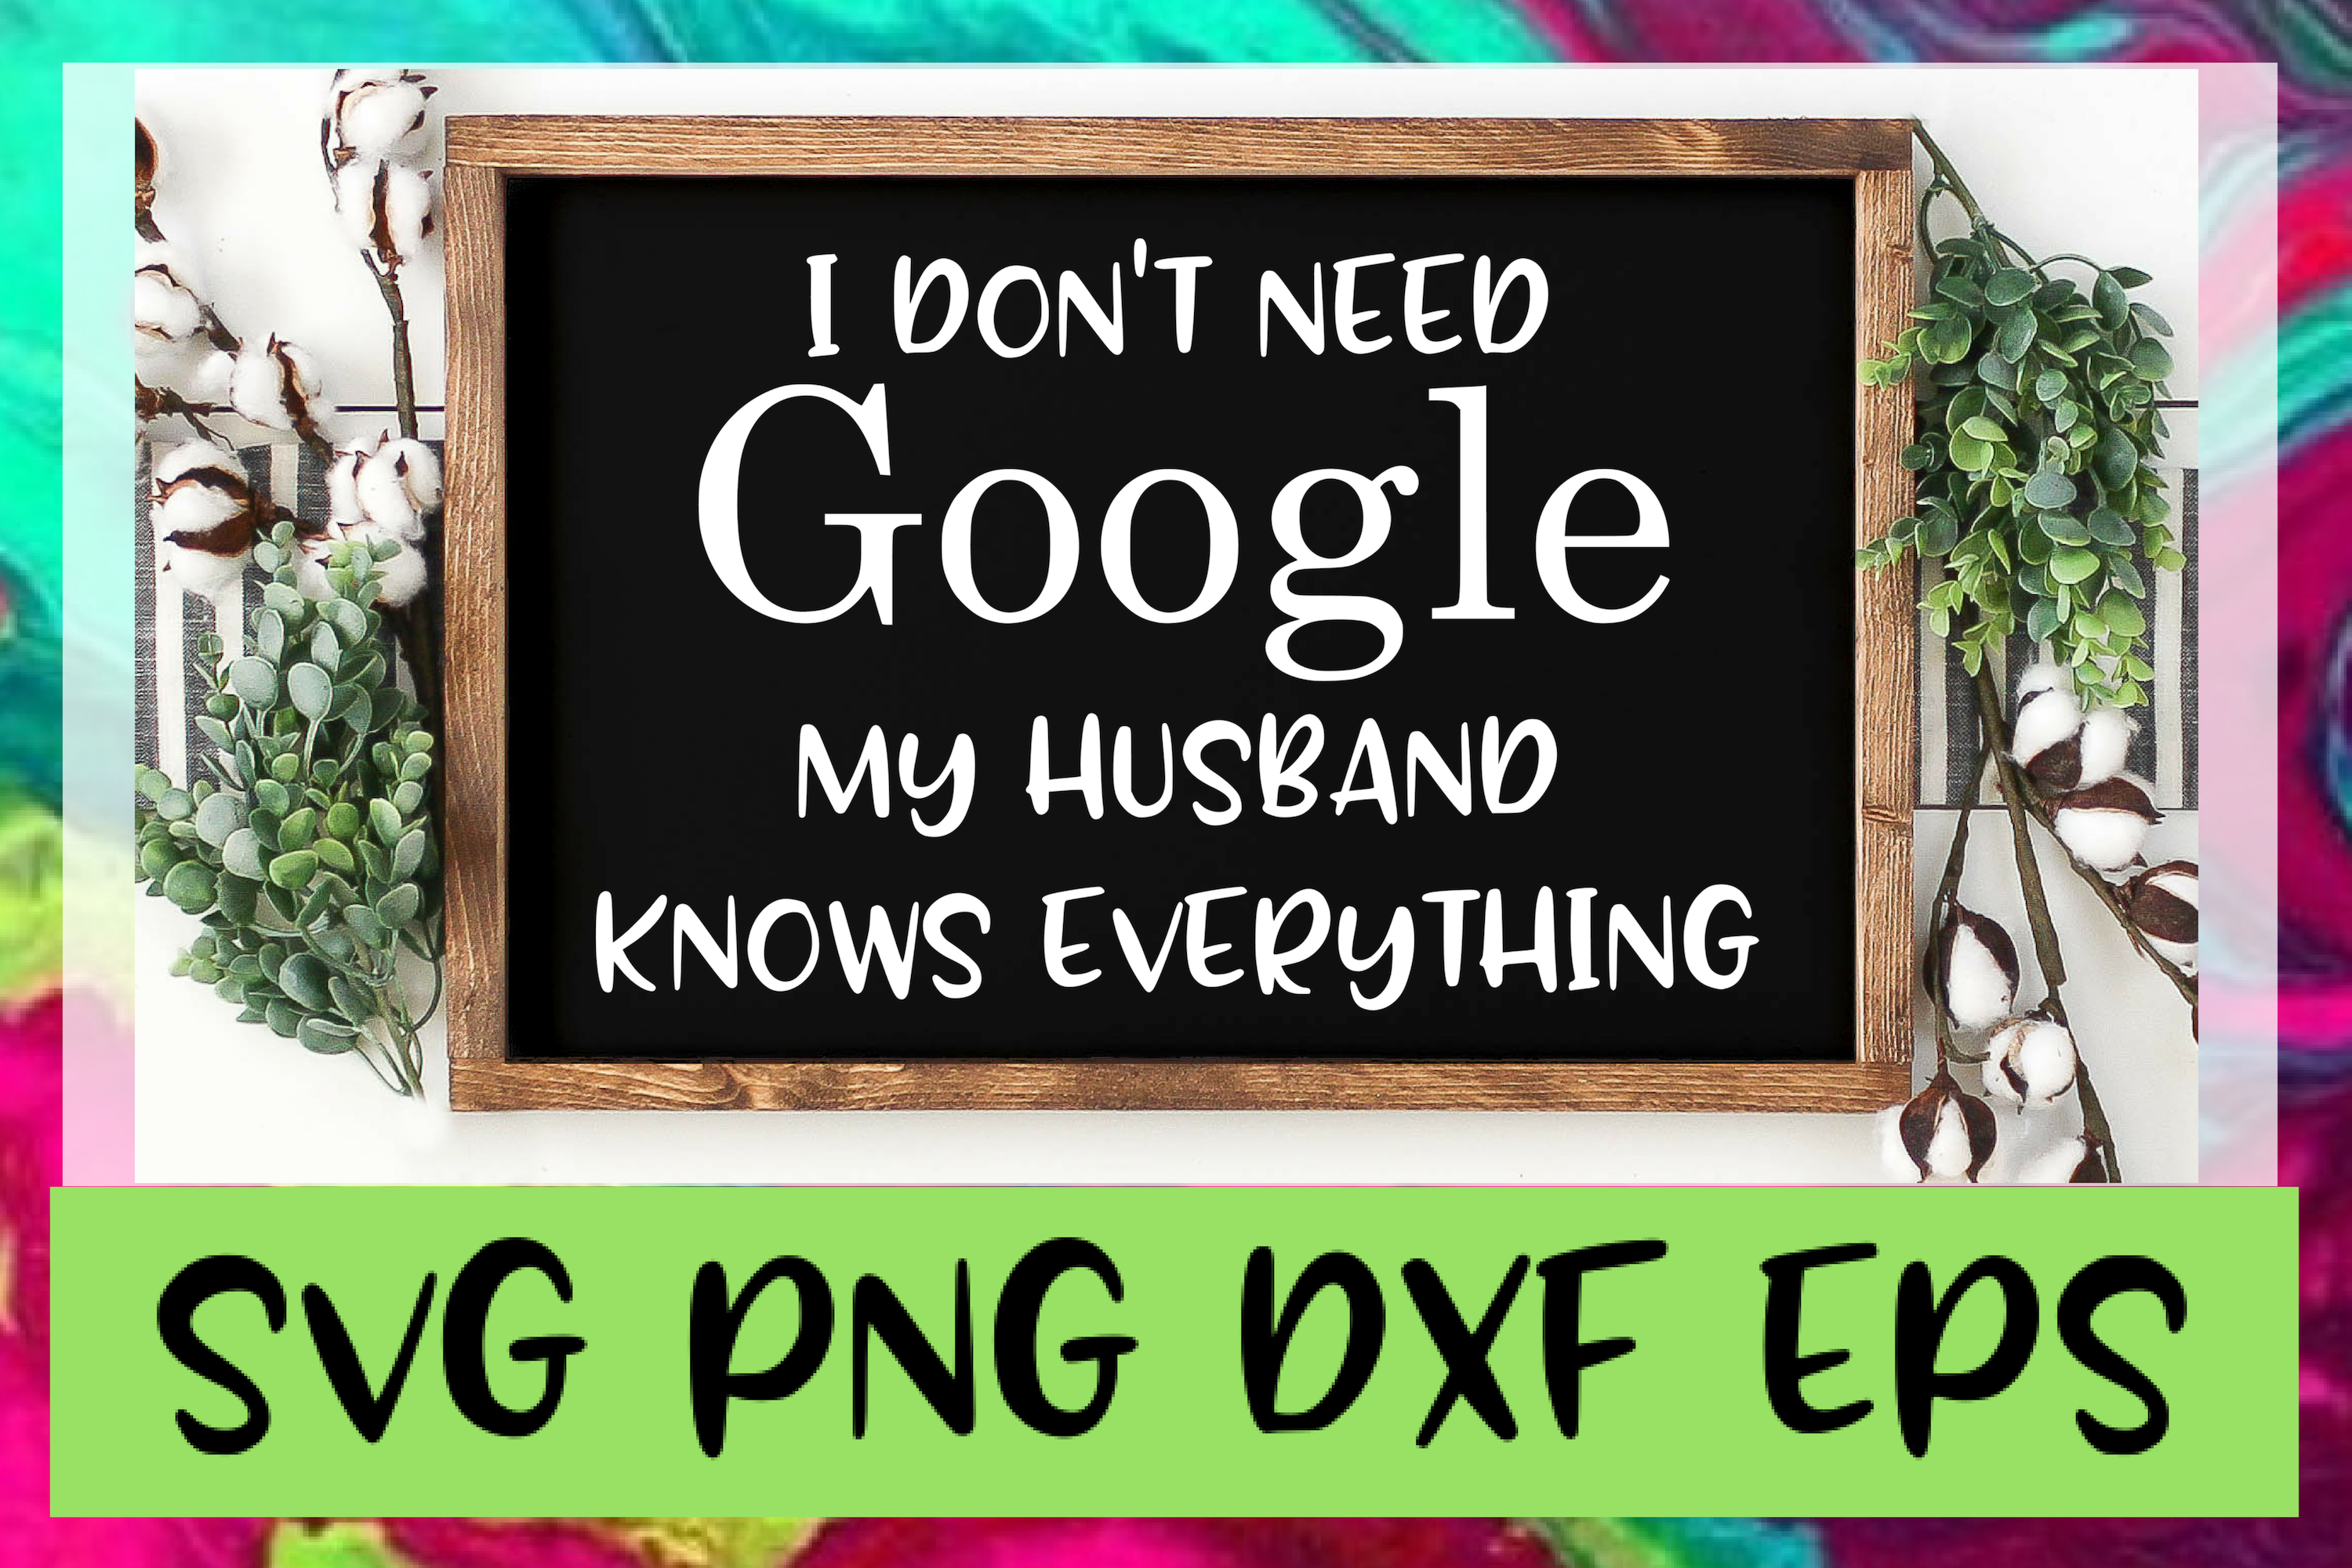 Funny Husband Google Quote SVG PNG DXF & EPS Design Files example image 1